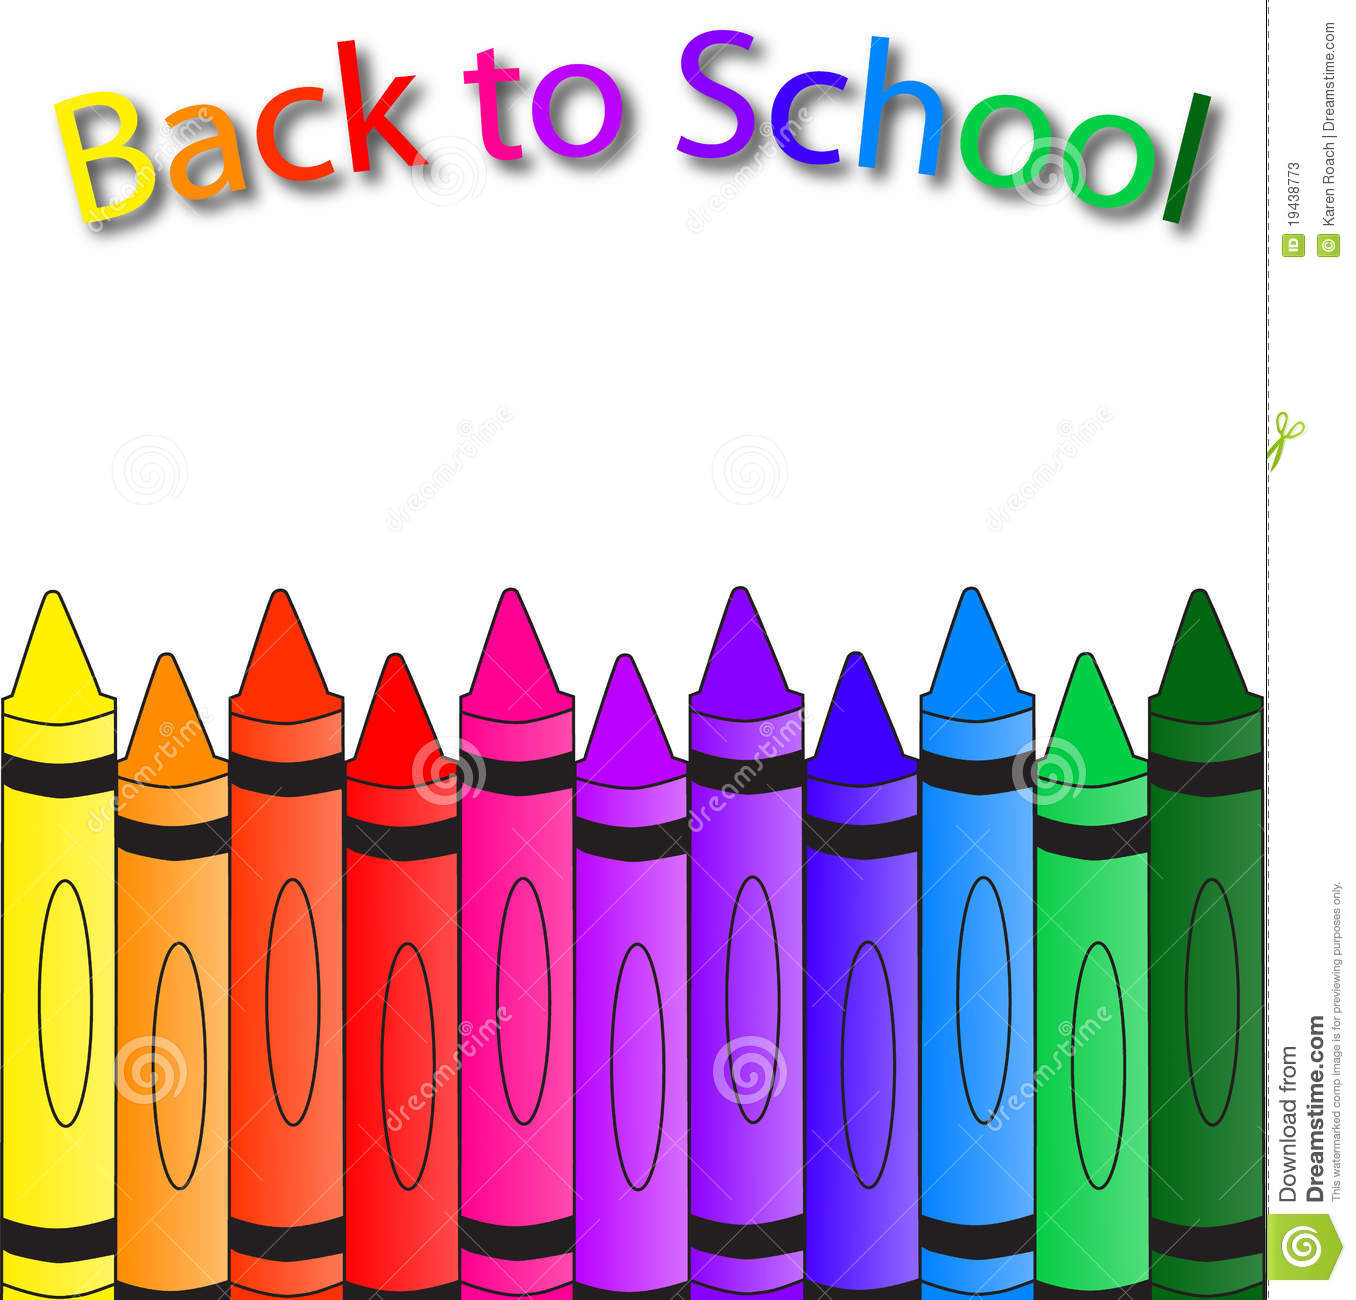 Elementary School Clipart Border | Clipart Panda - Free Clipart Images